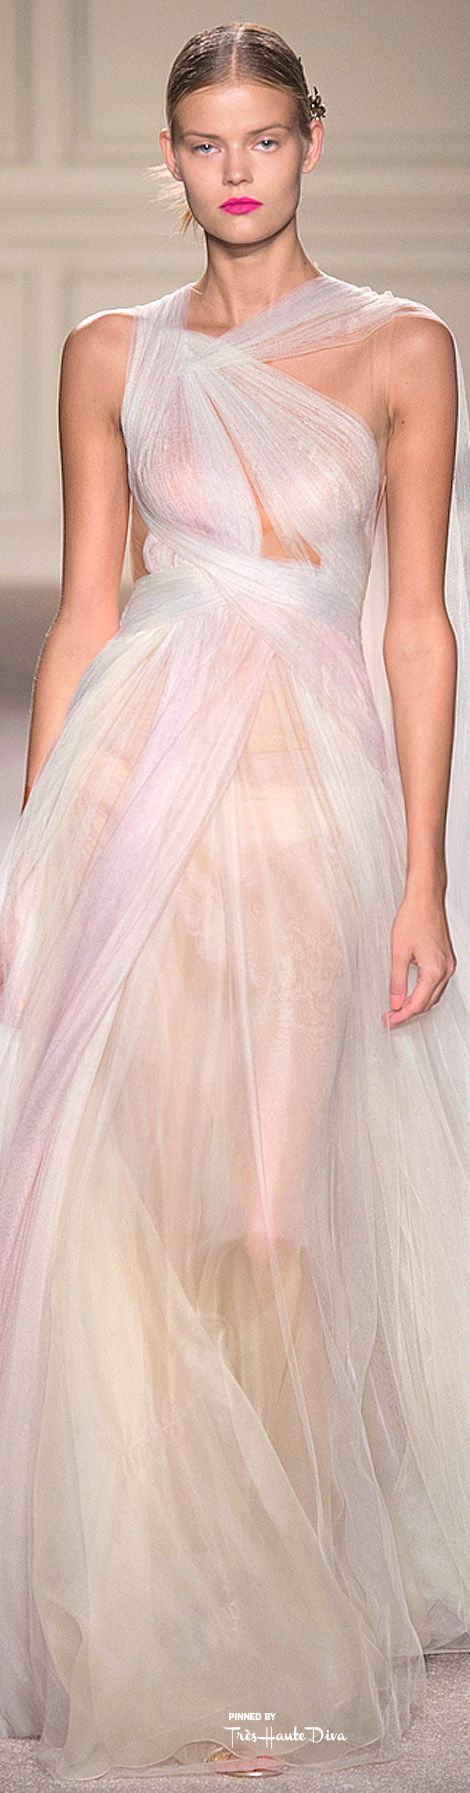 Marchesa Spring 2016 RTW ♔ Très Haute Diva ♔For more fashion visit my website at http://www.treshautediva.com/